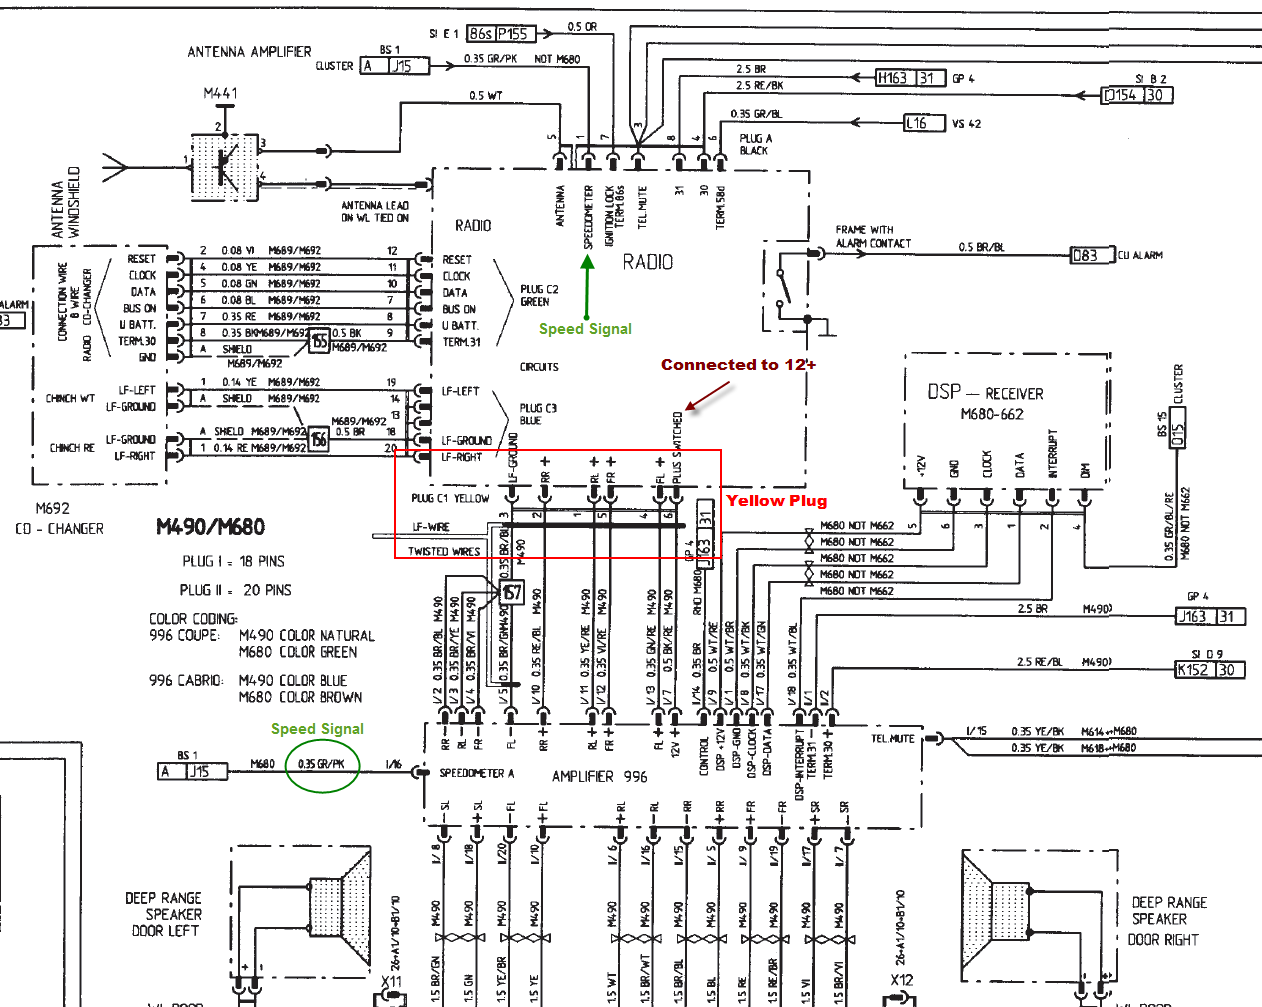 80 radiowiring_5a64549eac81f27f3f250d4ad01b4bb18b4d62d3 mini spi wiring diagram lcd diagram \u2022 indy500 co mini cooper wiring diagrams at fashall.co